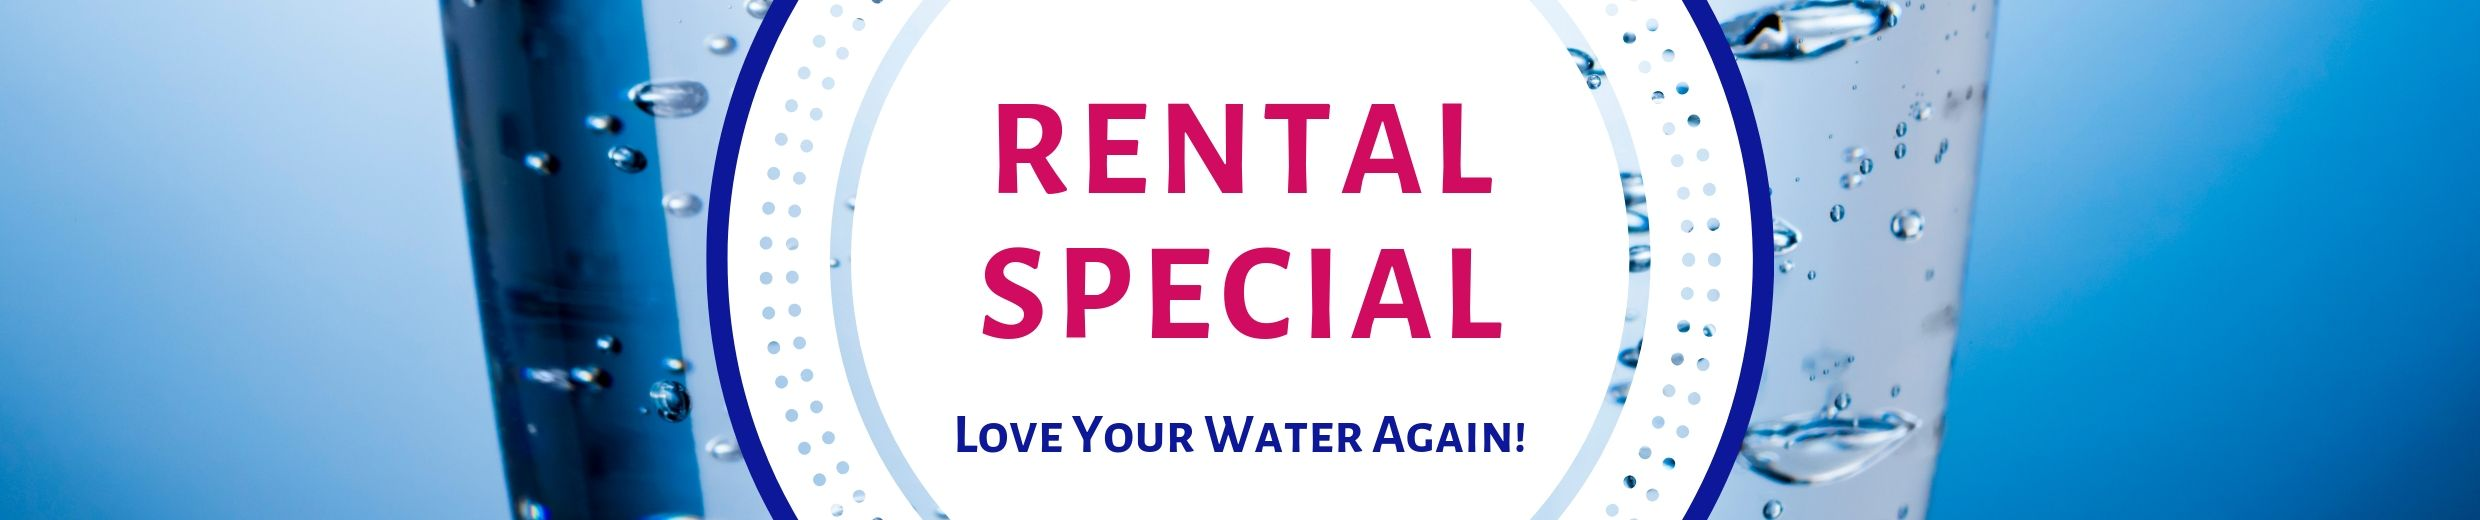 rental special, water softener rental